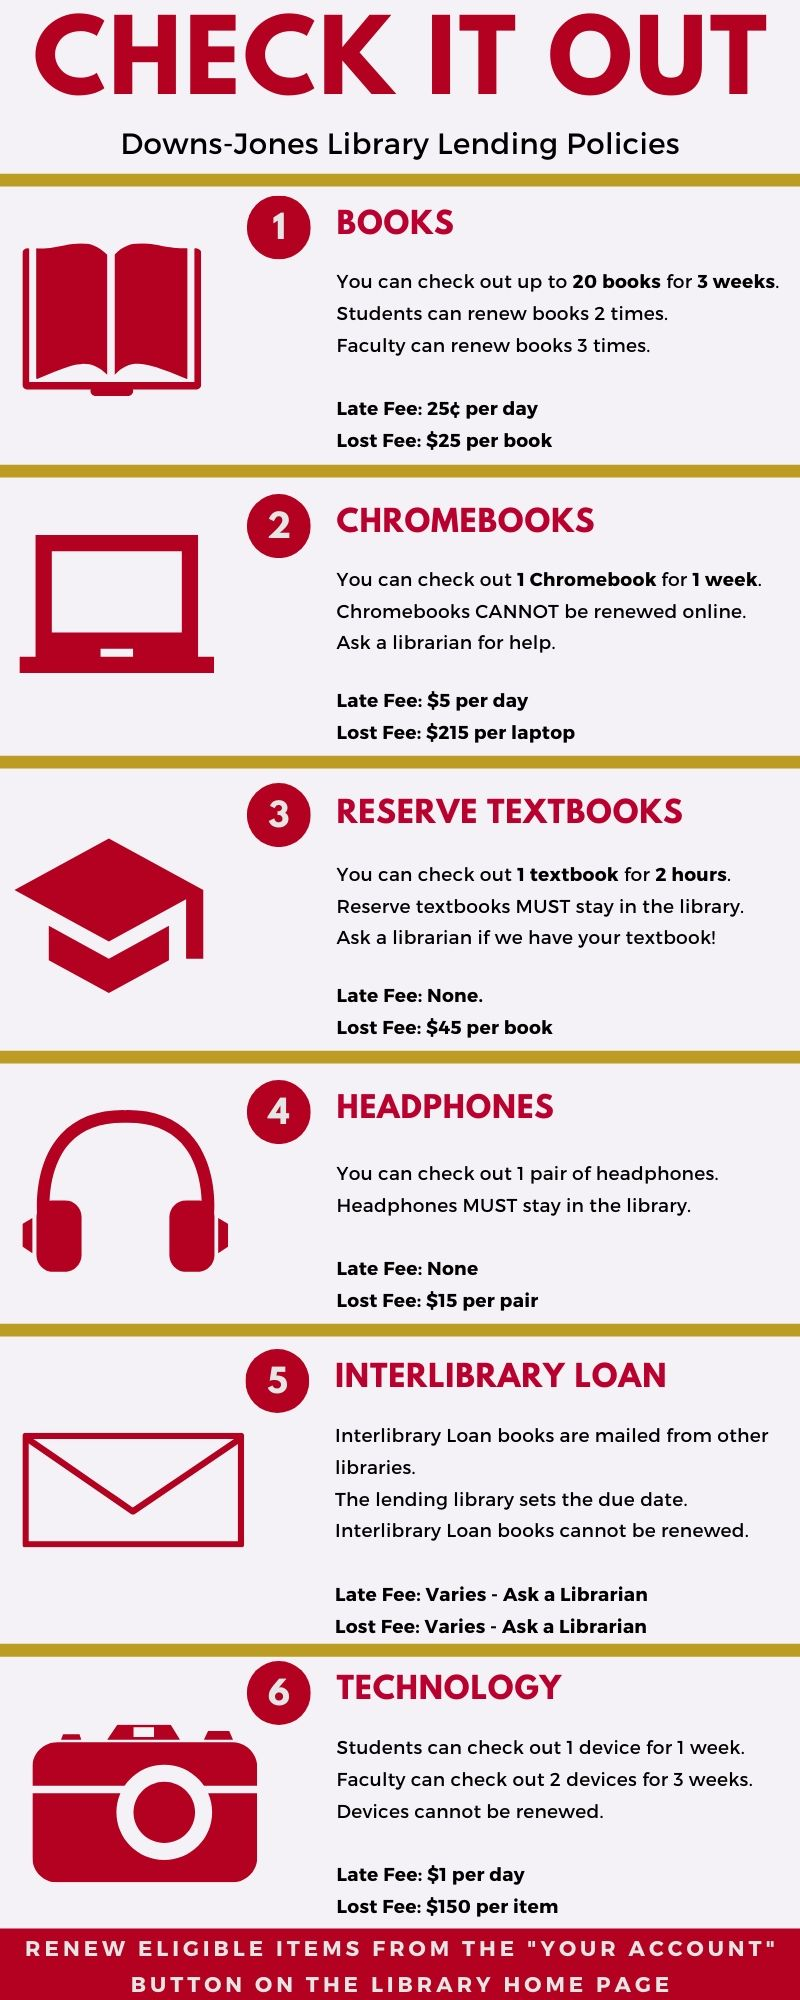 Graphic describing lending policies for students, faculty, and staff. Students can check out up to 20 books for 3 weeks, 1 Chromebook for 1 week, 1 reserve textbook for 2 hours, 1 pair of headphones within the library, and 1 other item of technology for 1 week. Faculty can check out up to 20 books for 4 weeks, and up to 2 pieces of technology for 1 week. Late and lost fines are also indicated. Everyone can request Interlibrary Loan items.